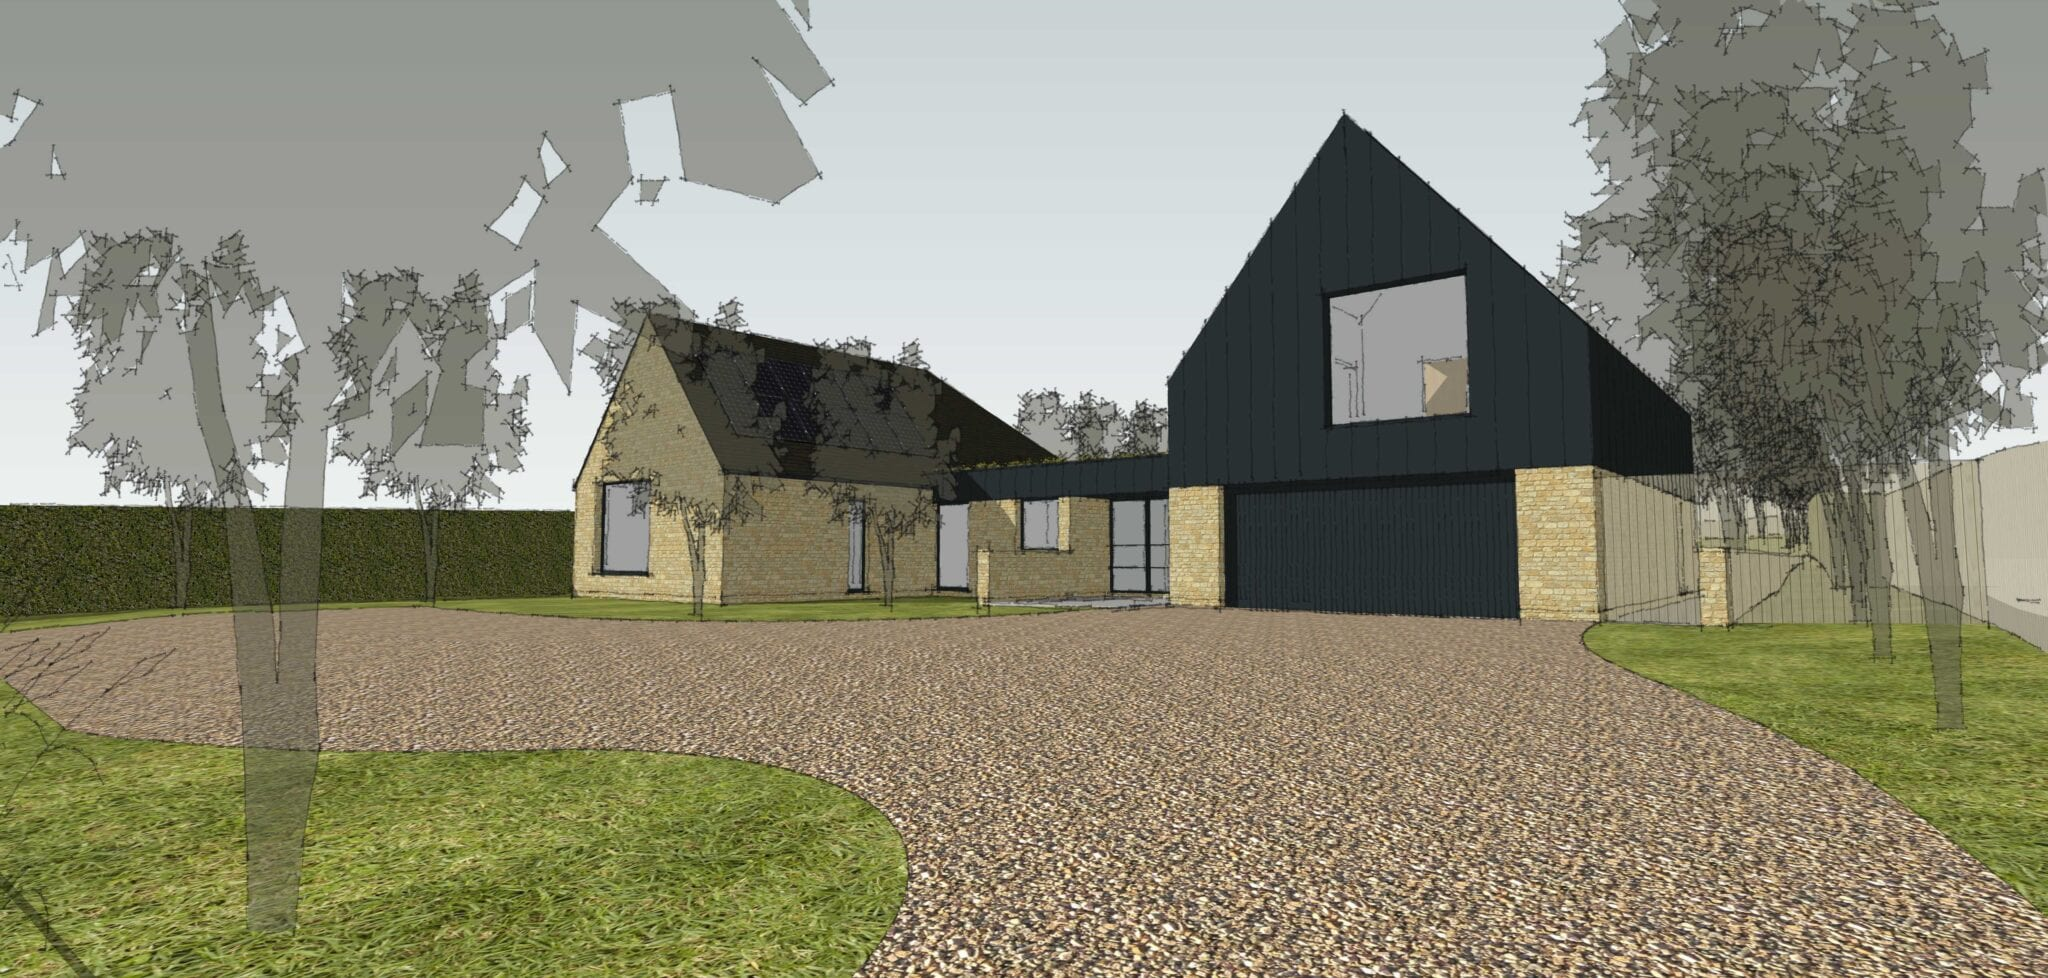 2nd Contemporary House Recommended Approval within a week…